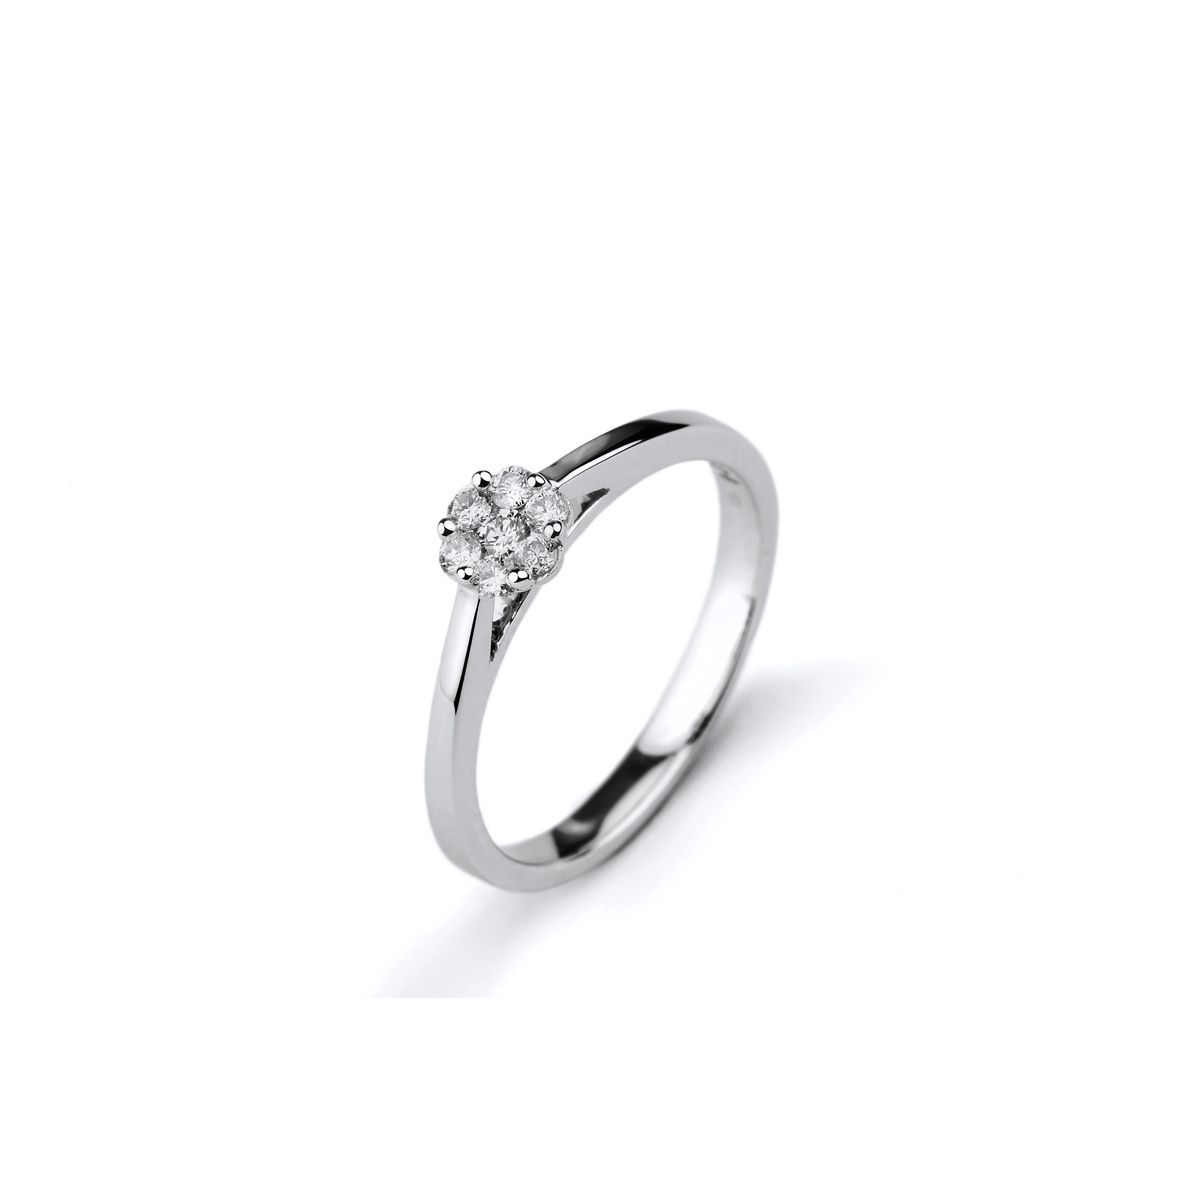 Solitaire en or blanc et diamants de 0.18ct vue 1